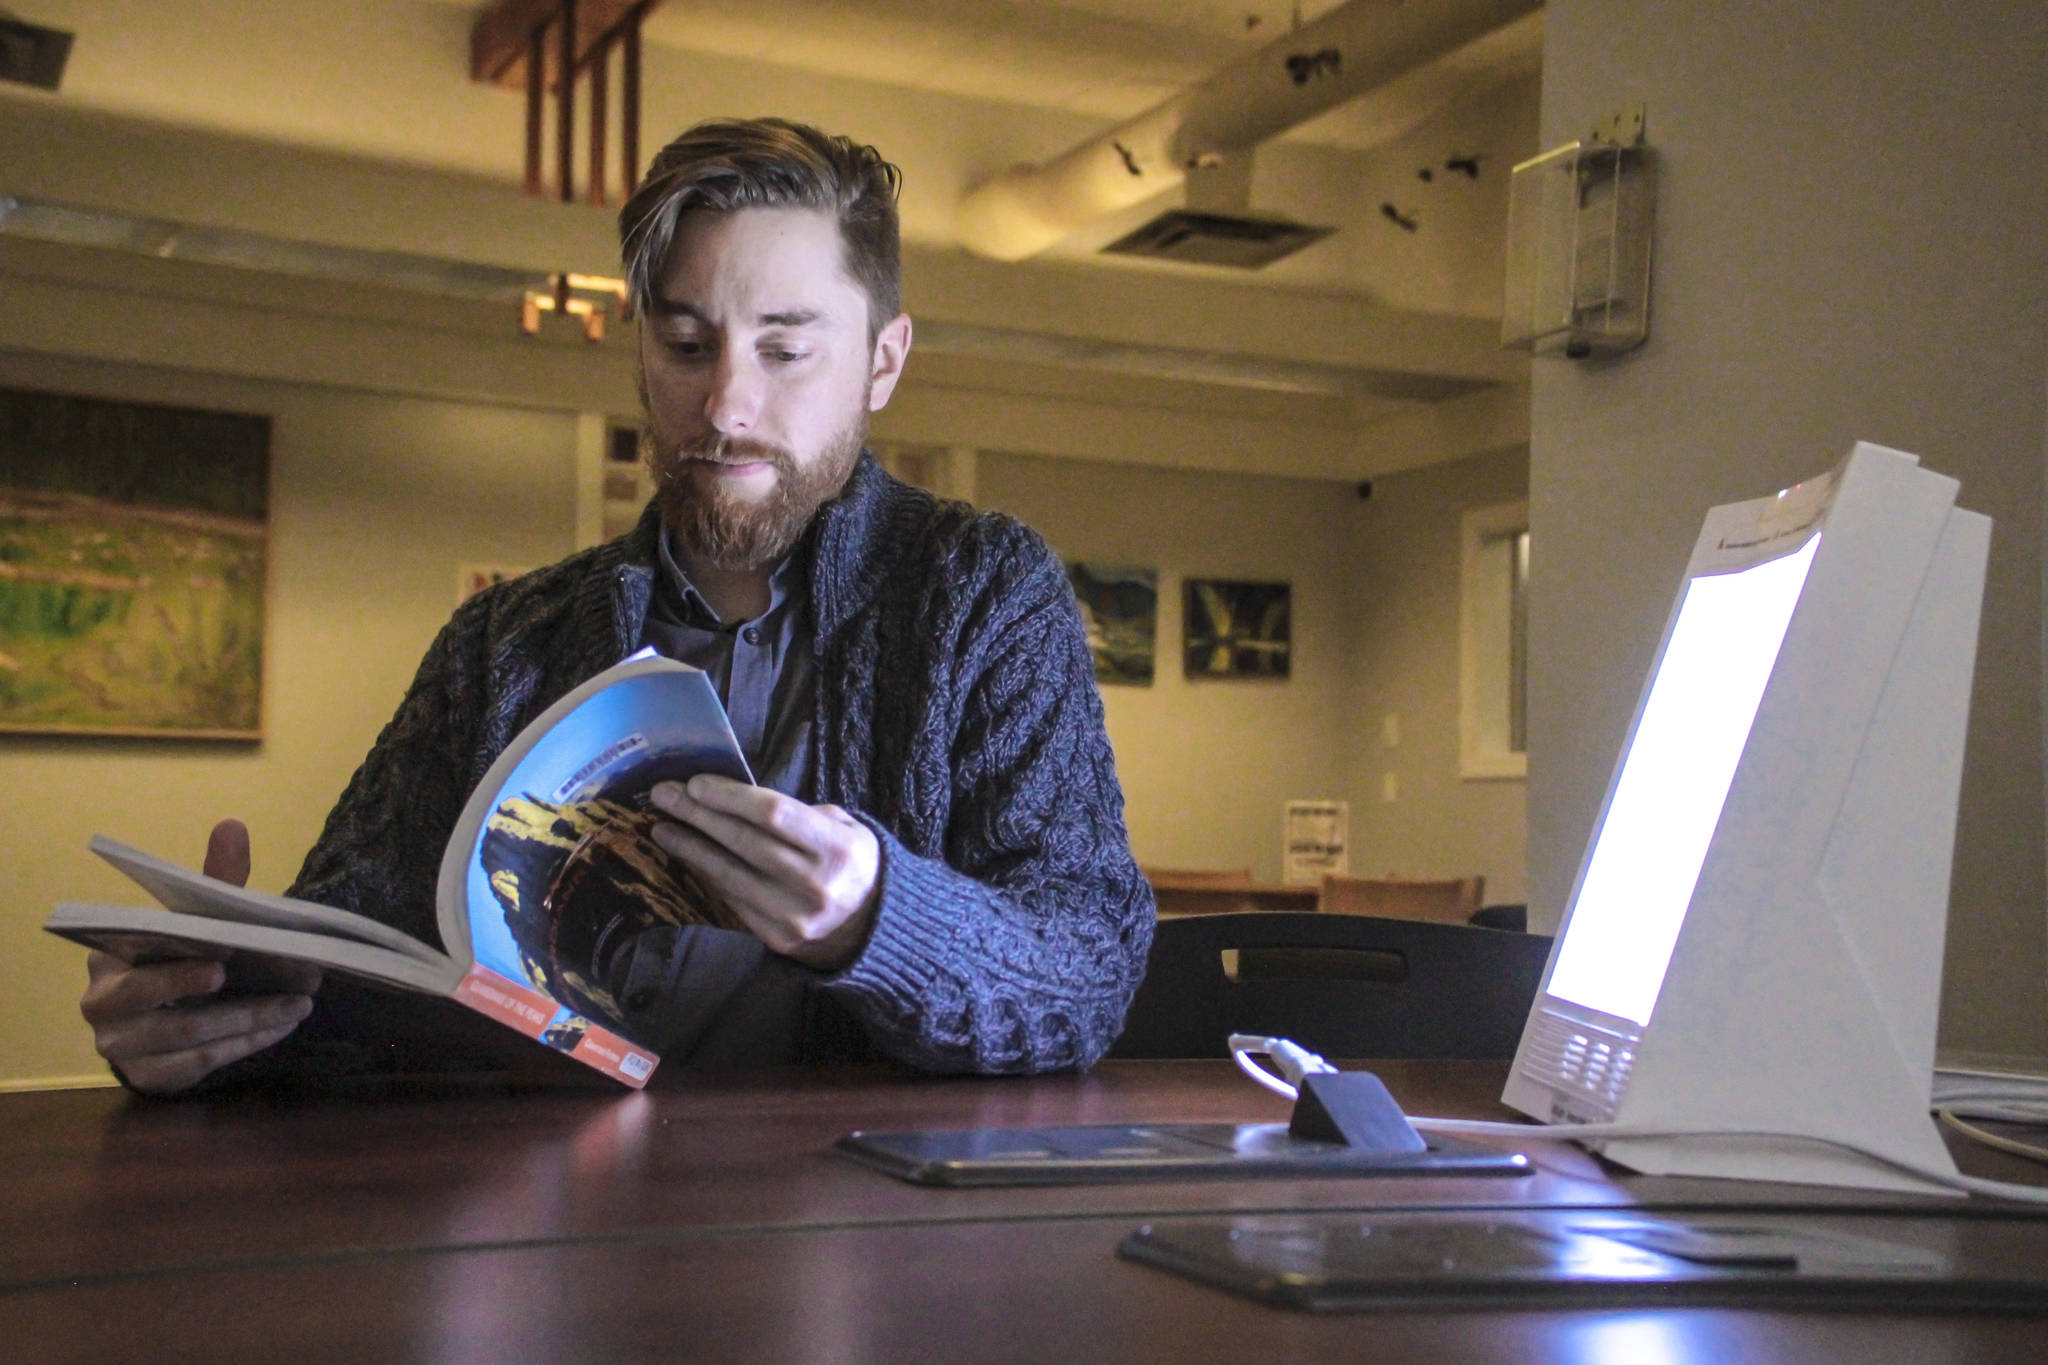 Terrace Public Library Director David Tremblay says the library is rolling out online programs for kids, and expects to have expanded borrowing options for e-books to help families through periods of self isolation due to the COVID-19 pandemic. (Natalia Balcerzak/File Photo)